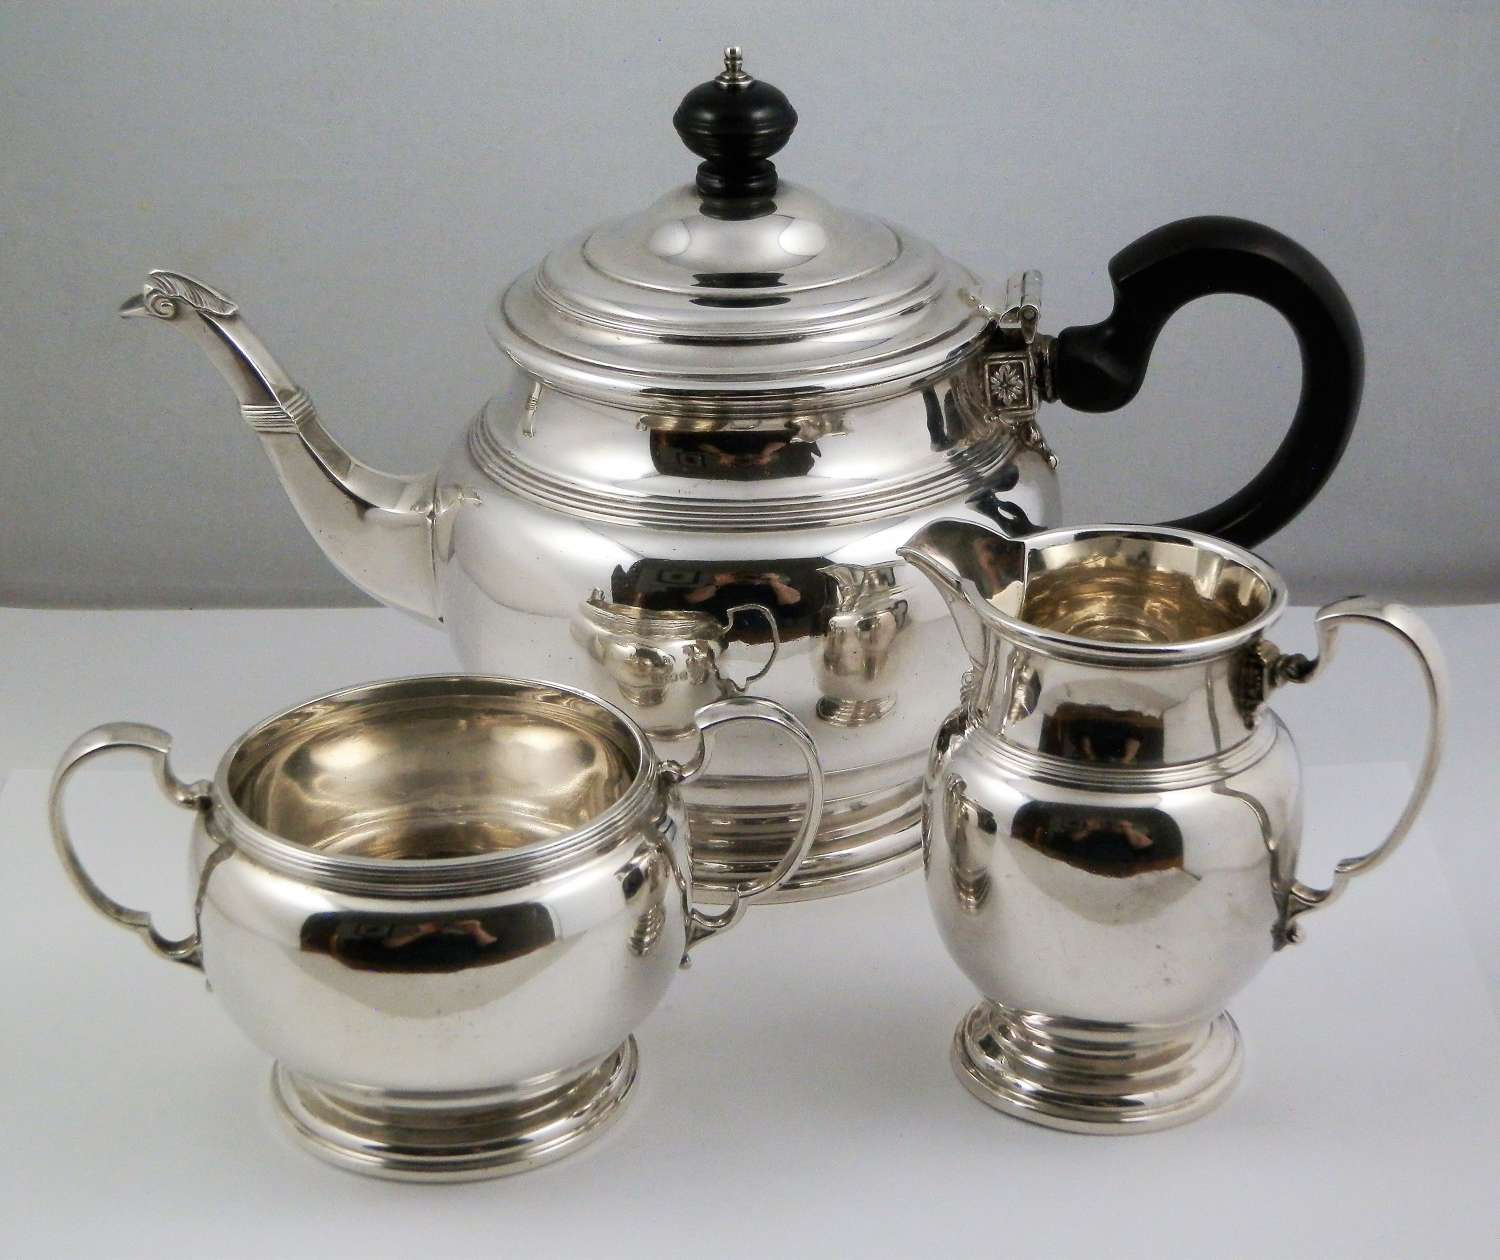 Silver three piece tea set, Mappin & Webb 1926